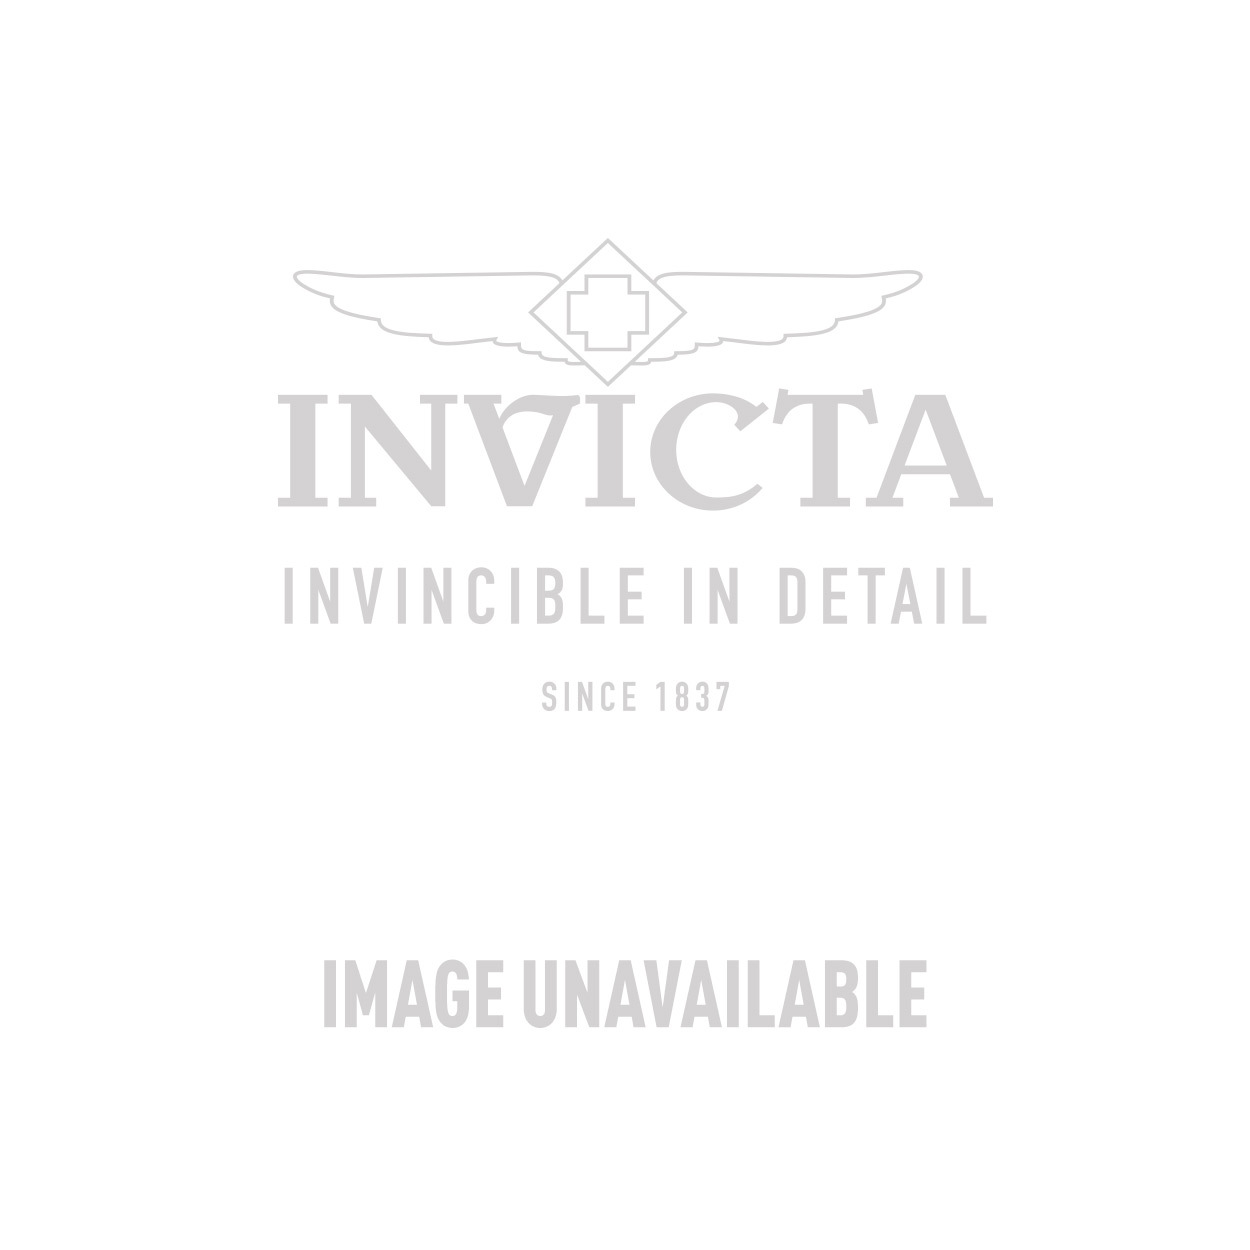 Invicta Sea Spider Mechanical Watch - Stainless Steel case with Steel, Grey tone Stainless Steel, Polyurethane band - Model 1255